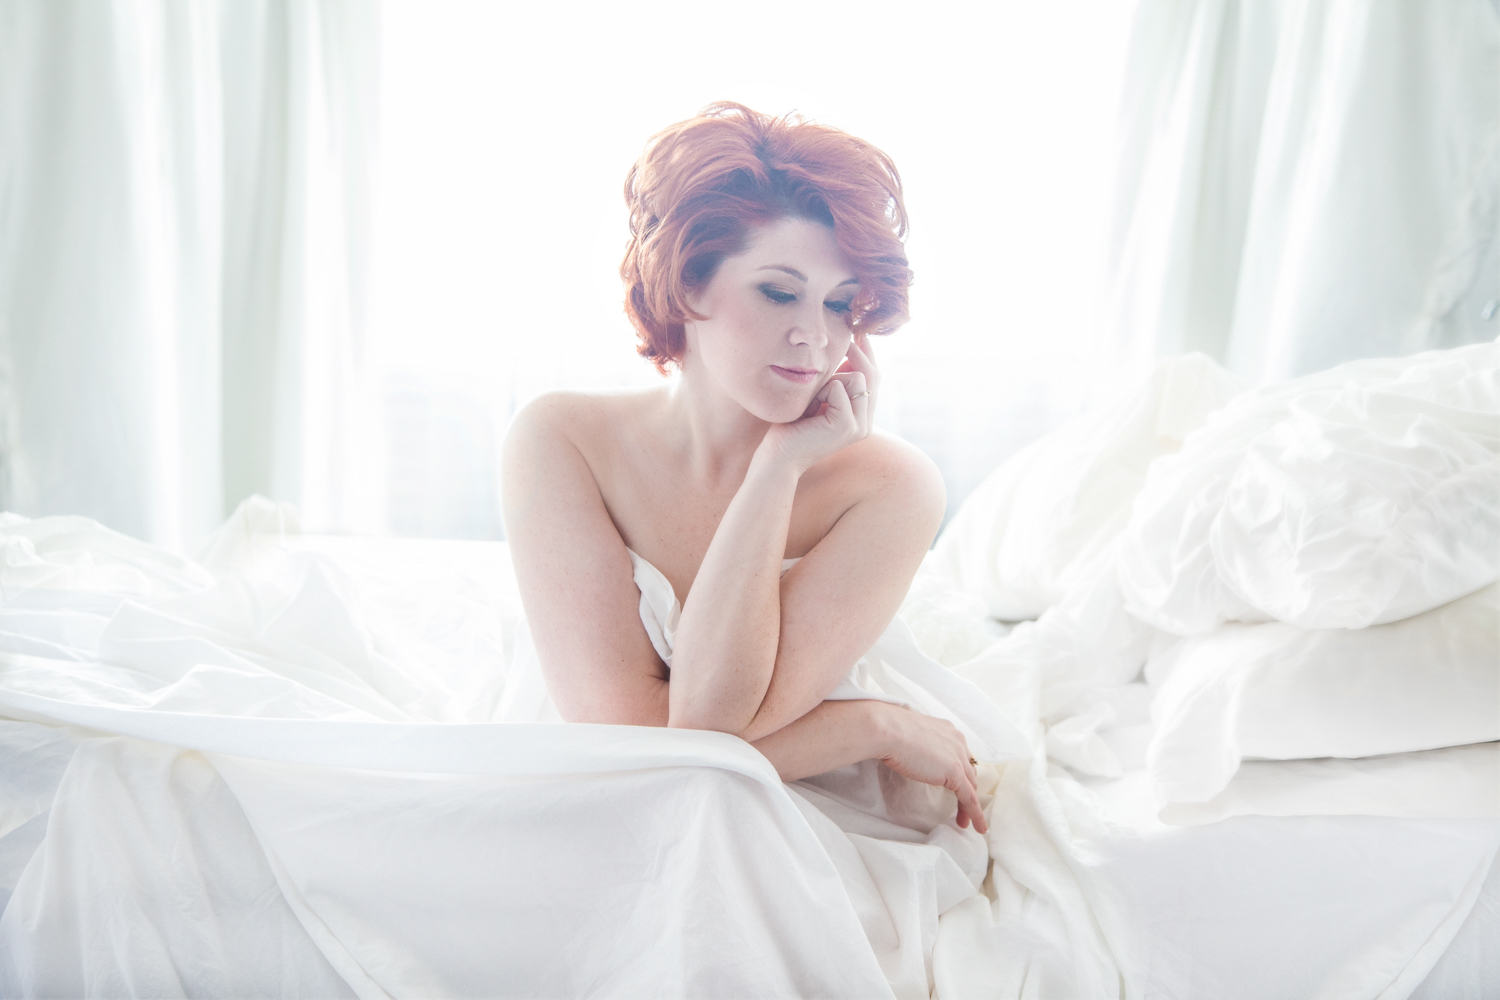 Portrait-Womens-Portraits-beautiful-glamour-woman-red-hair-in-bed-as-marilyn-monroe-061.jpg